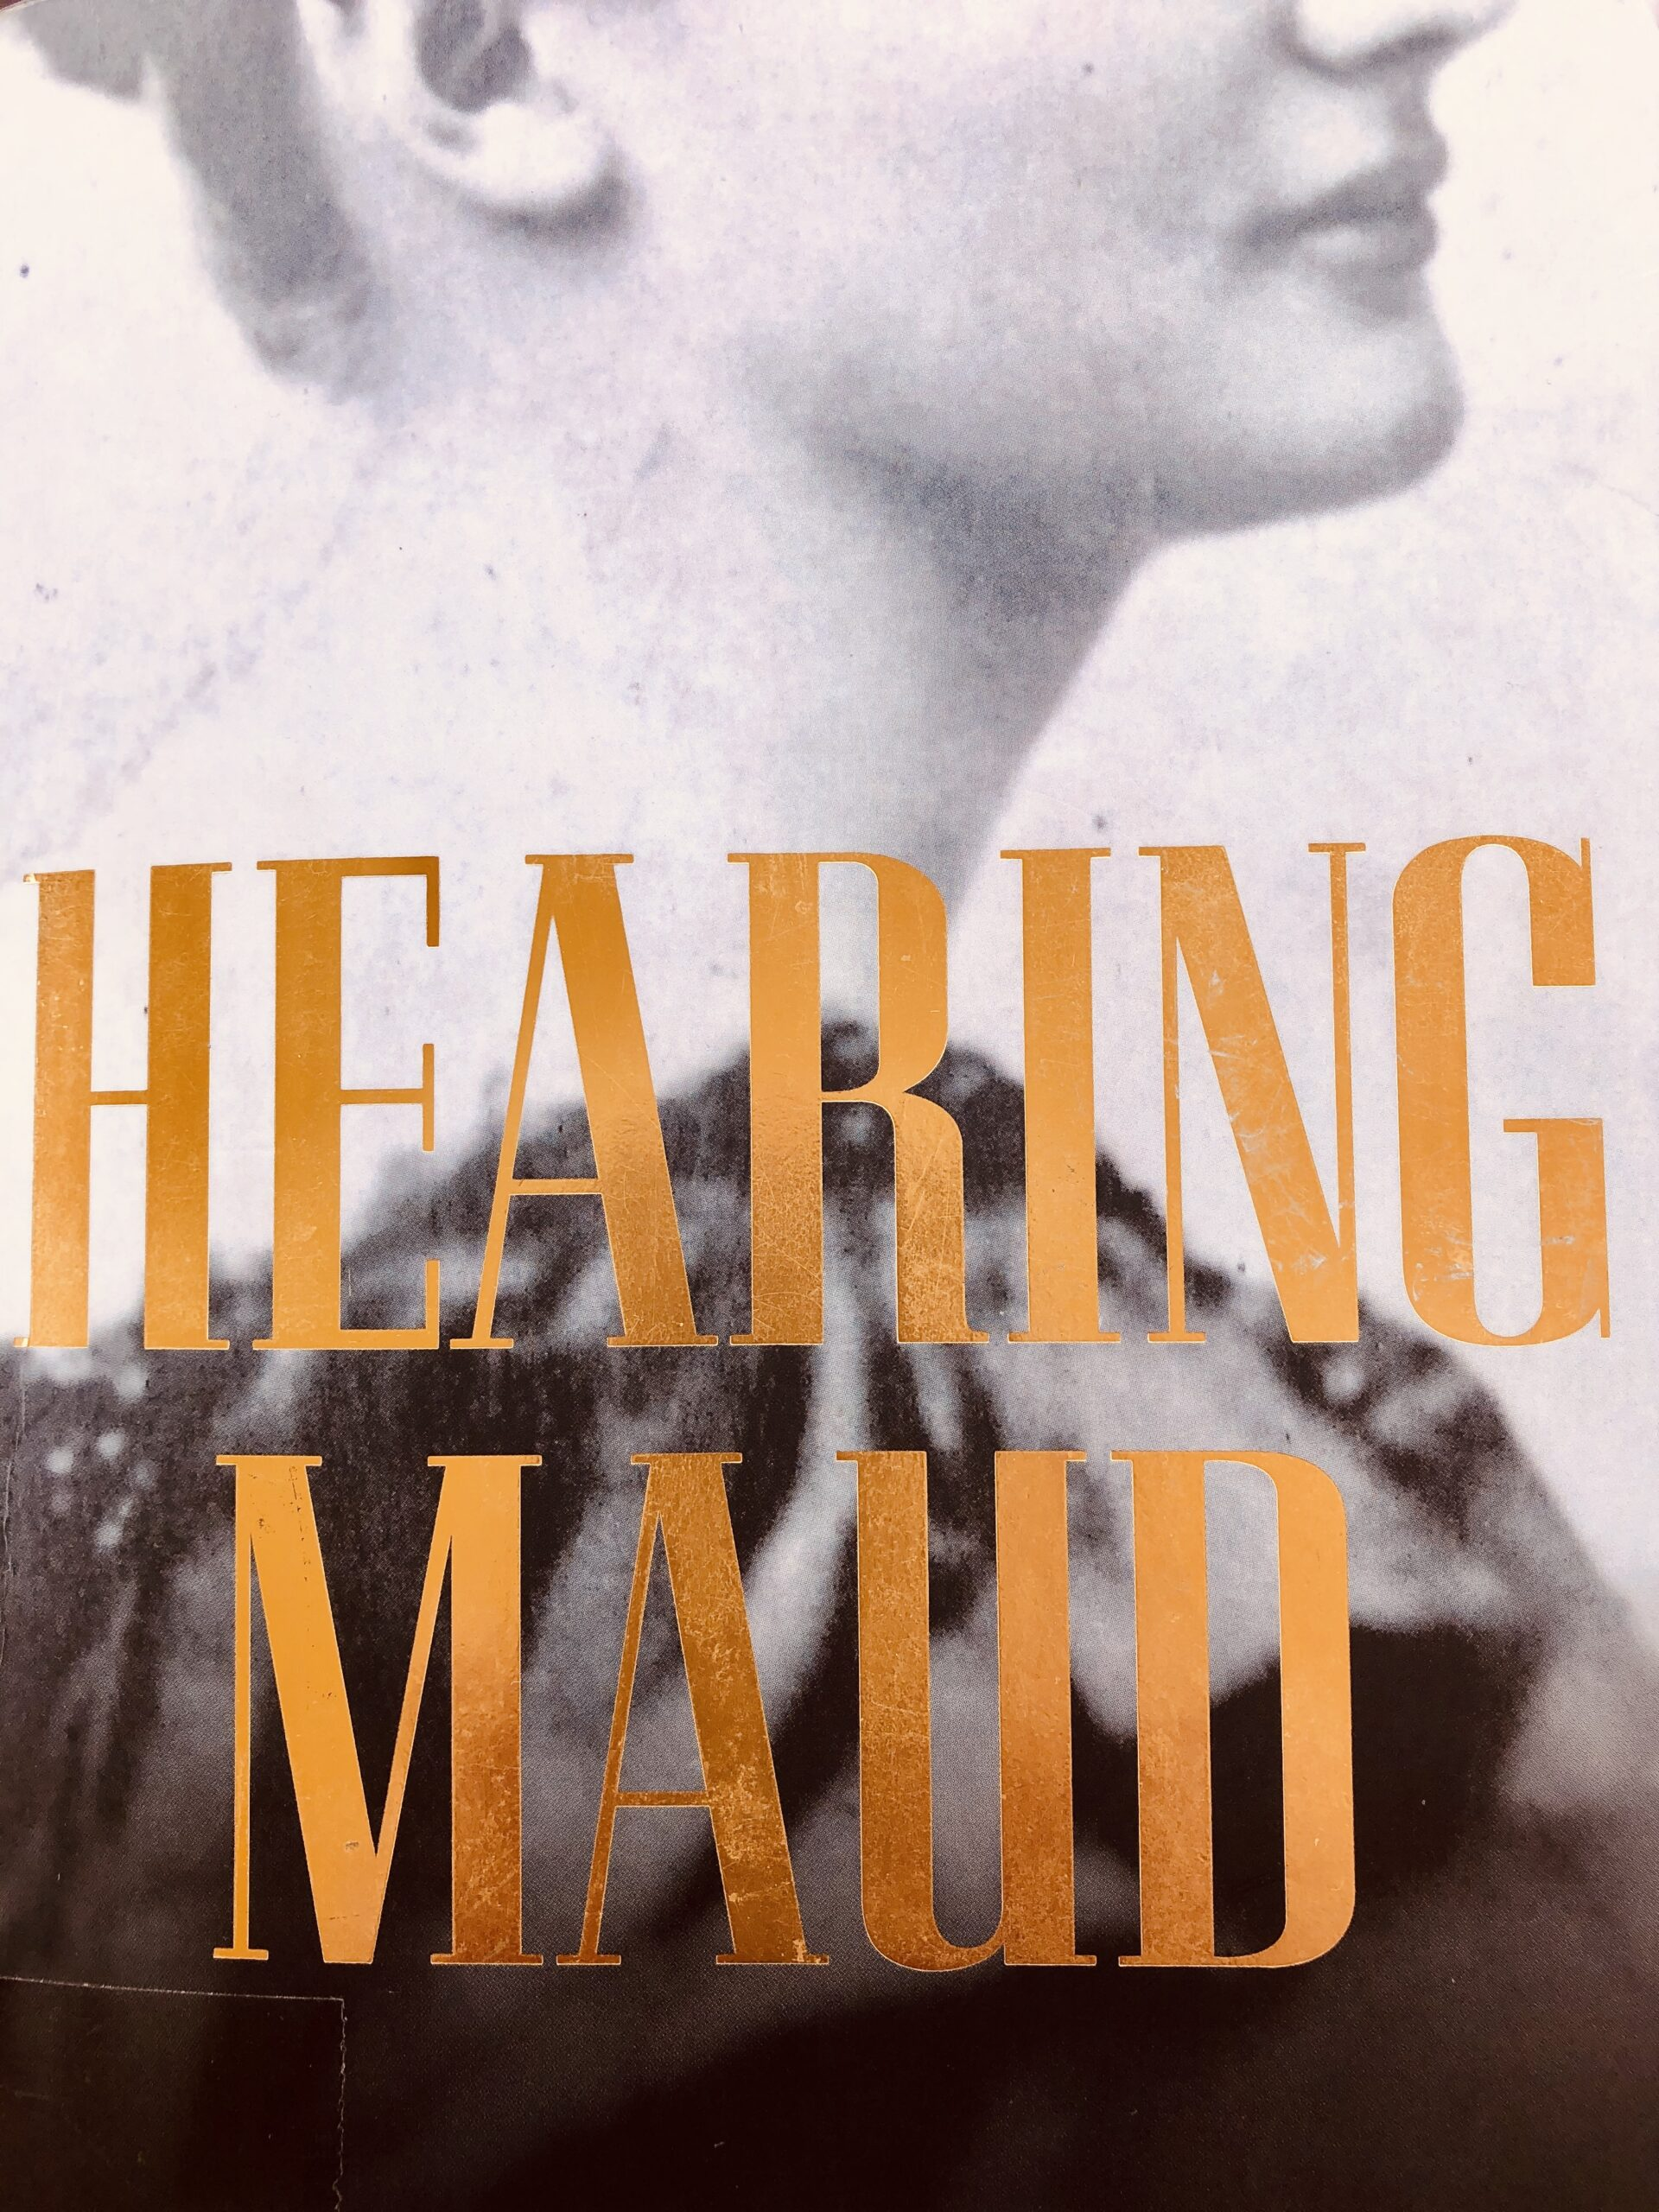 This a picture of the book cover. It has a black and white picture of a woman from early in the 1900s, facing side on to the camera. The words 'Hearing Maud' overlay the picture and are in gold.